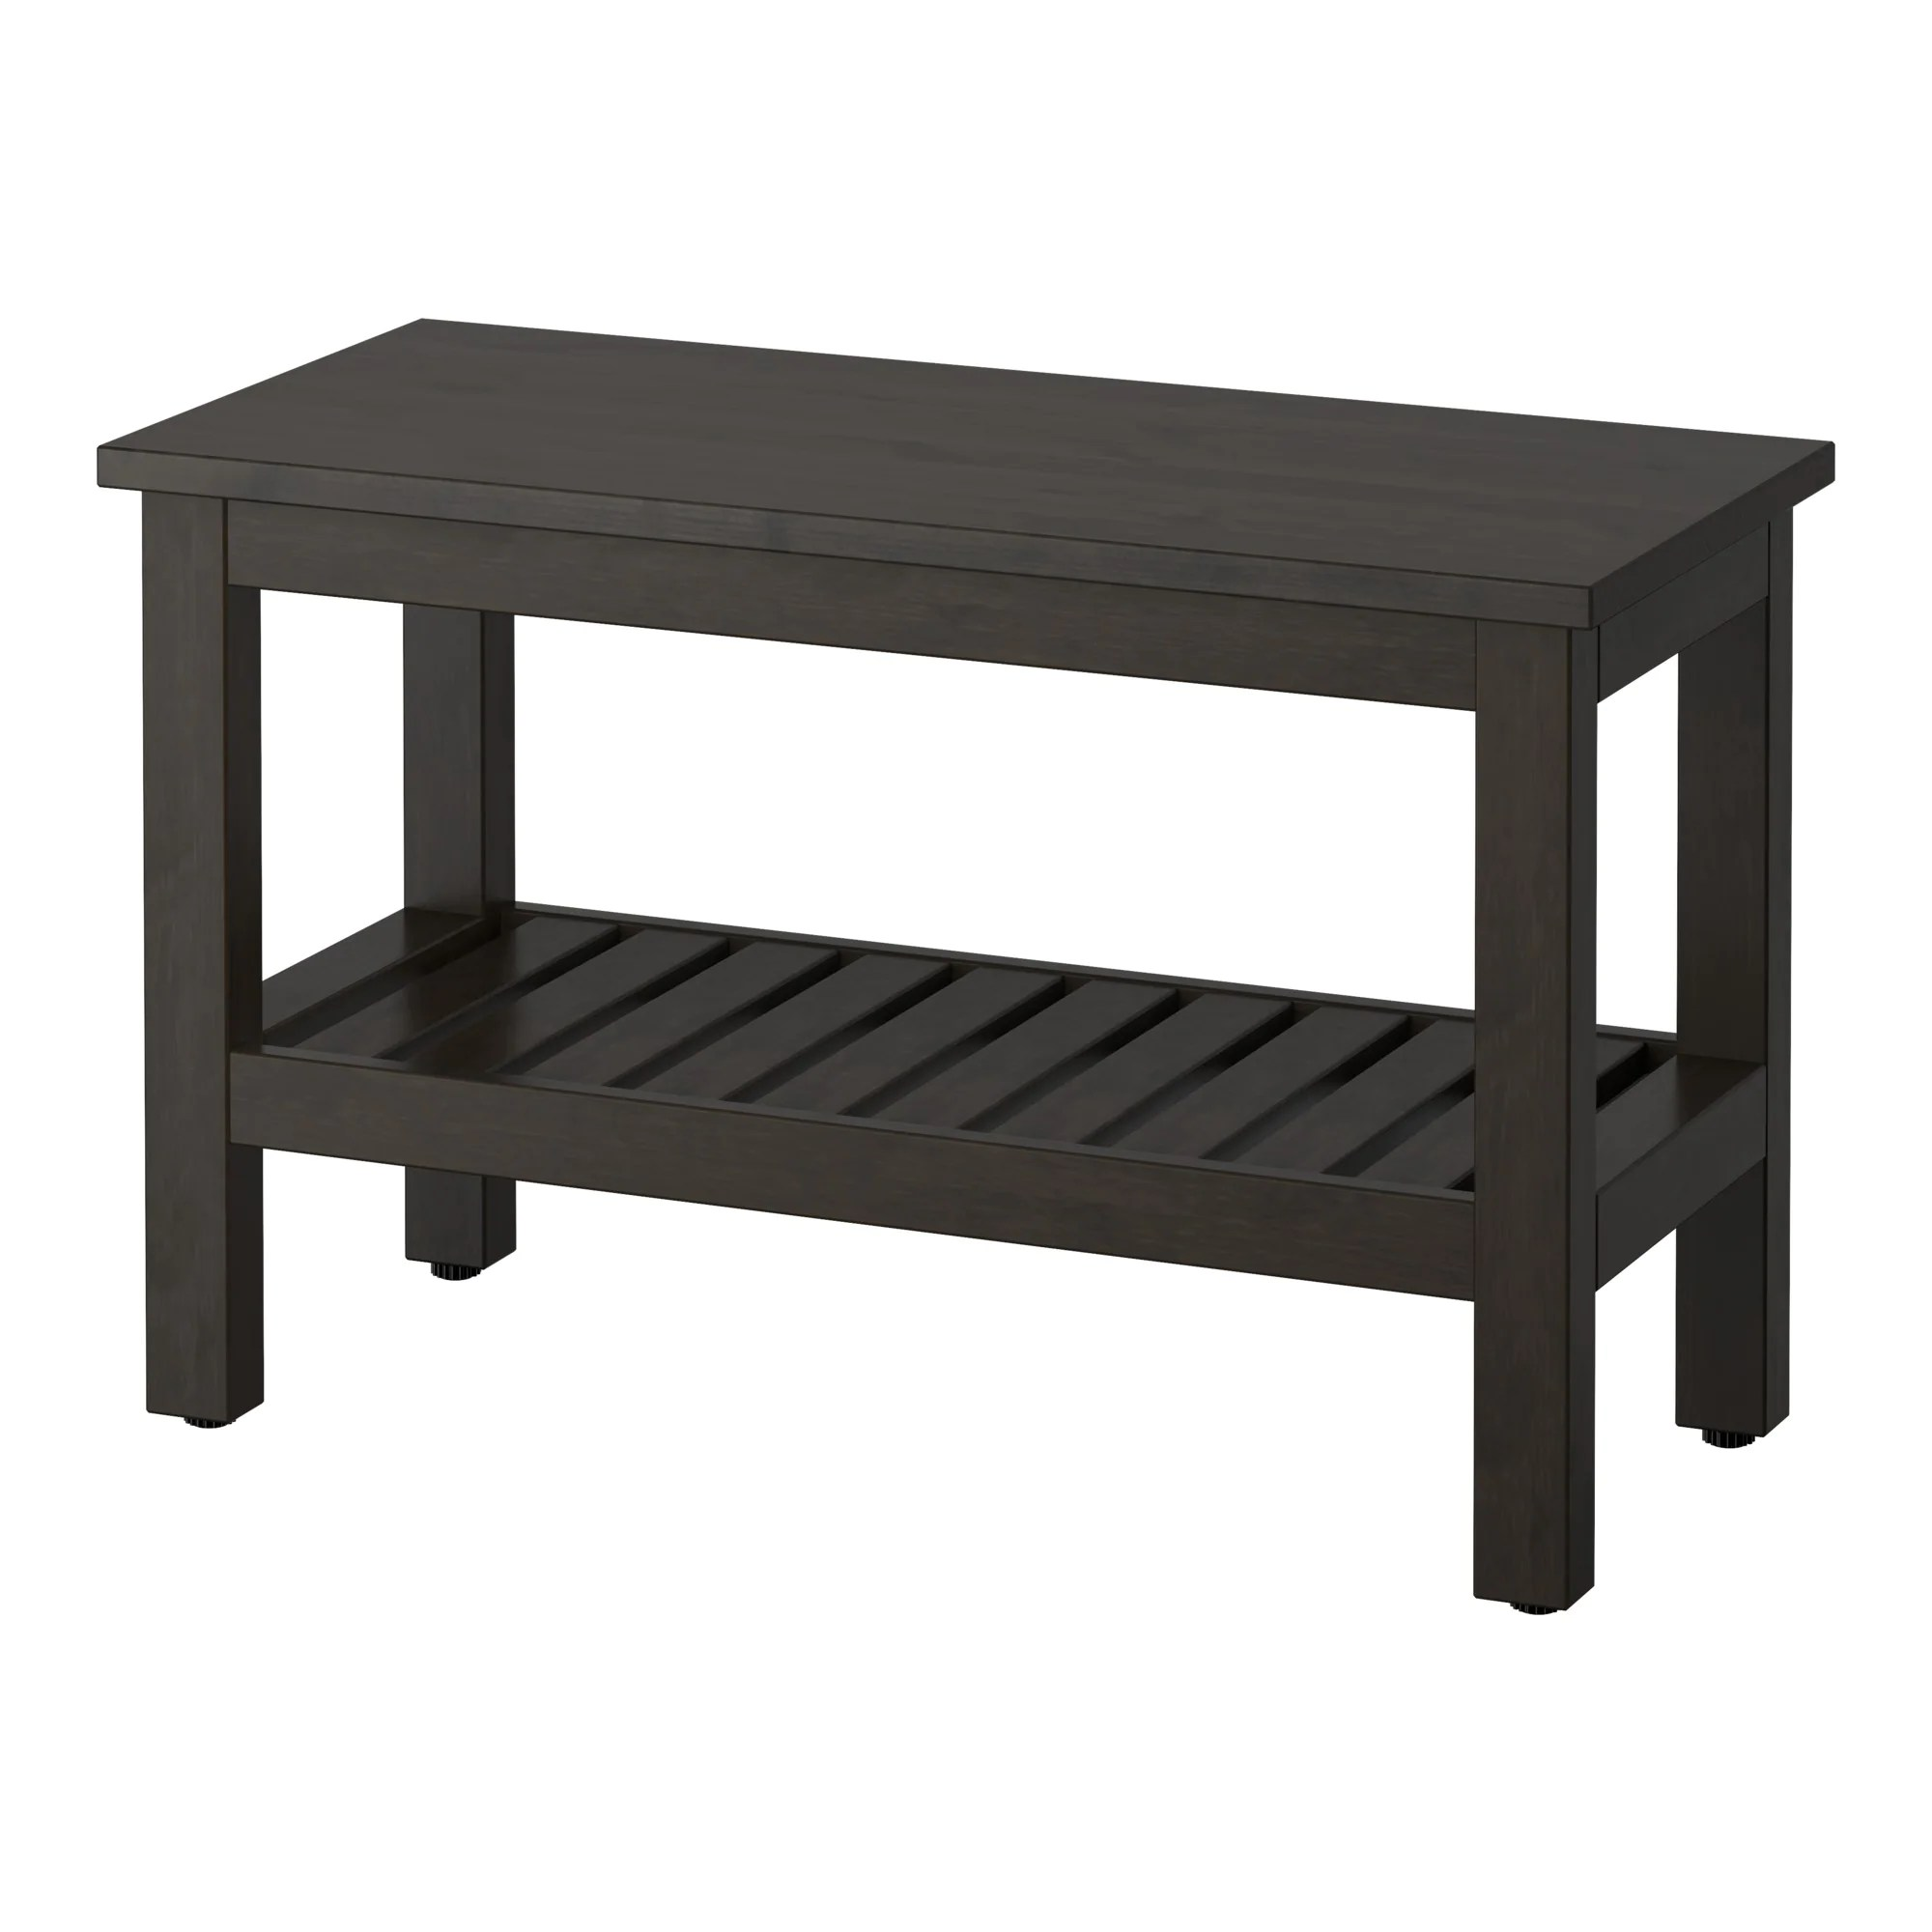 Black Bench Hemnes Bench Black Brown Stain